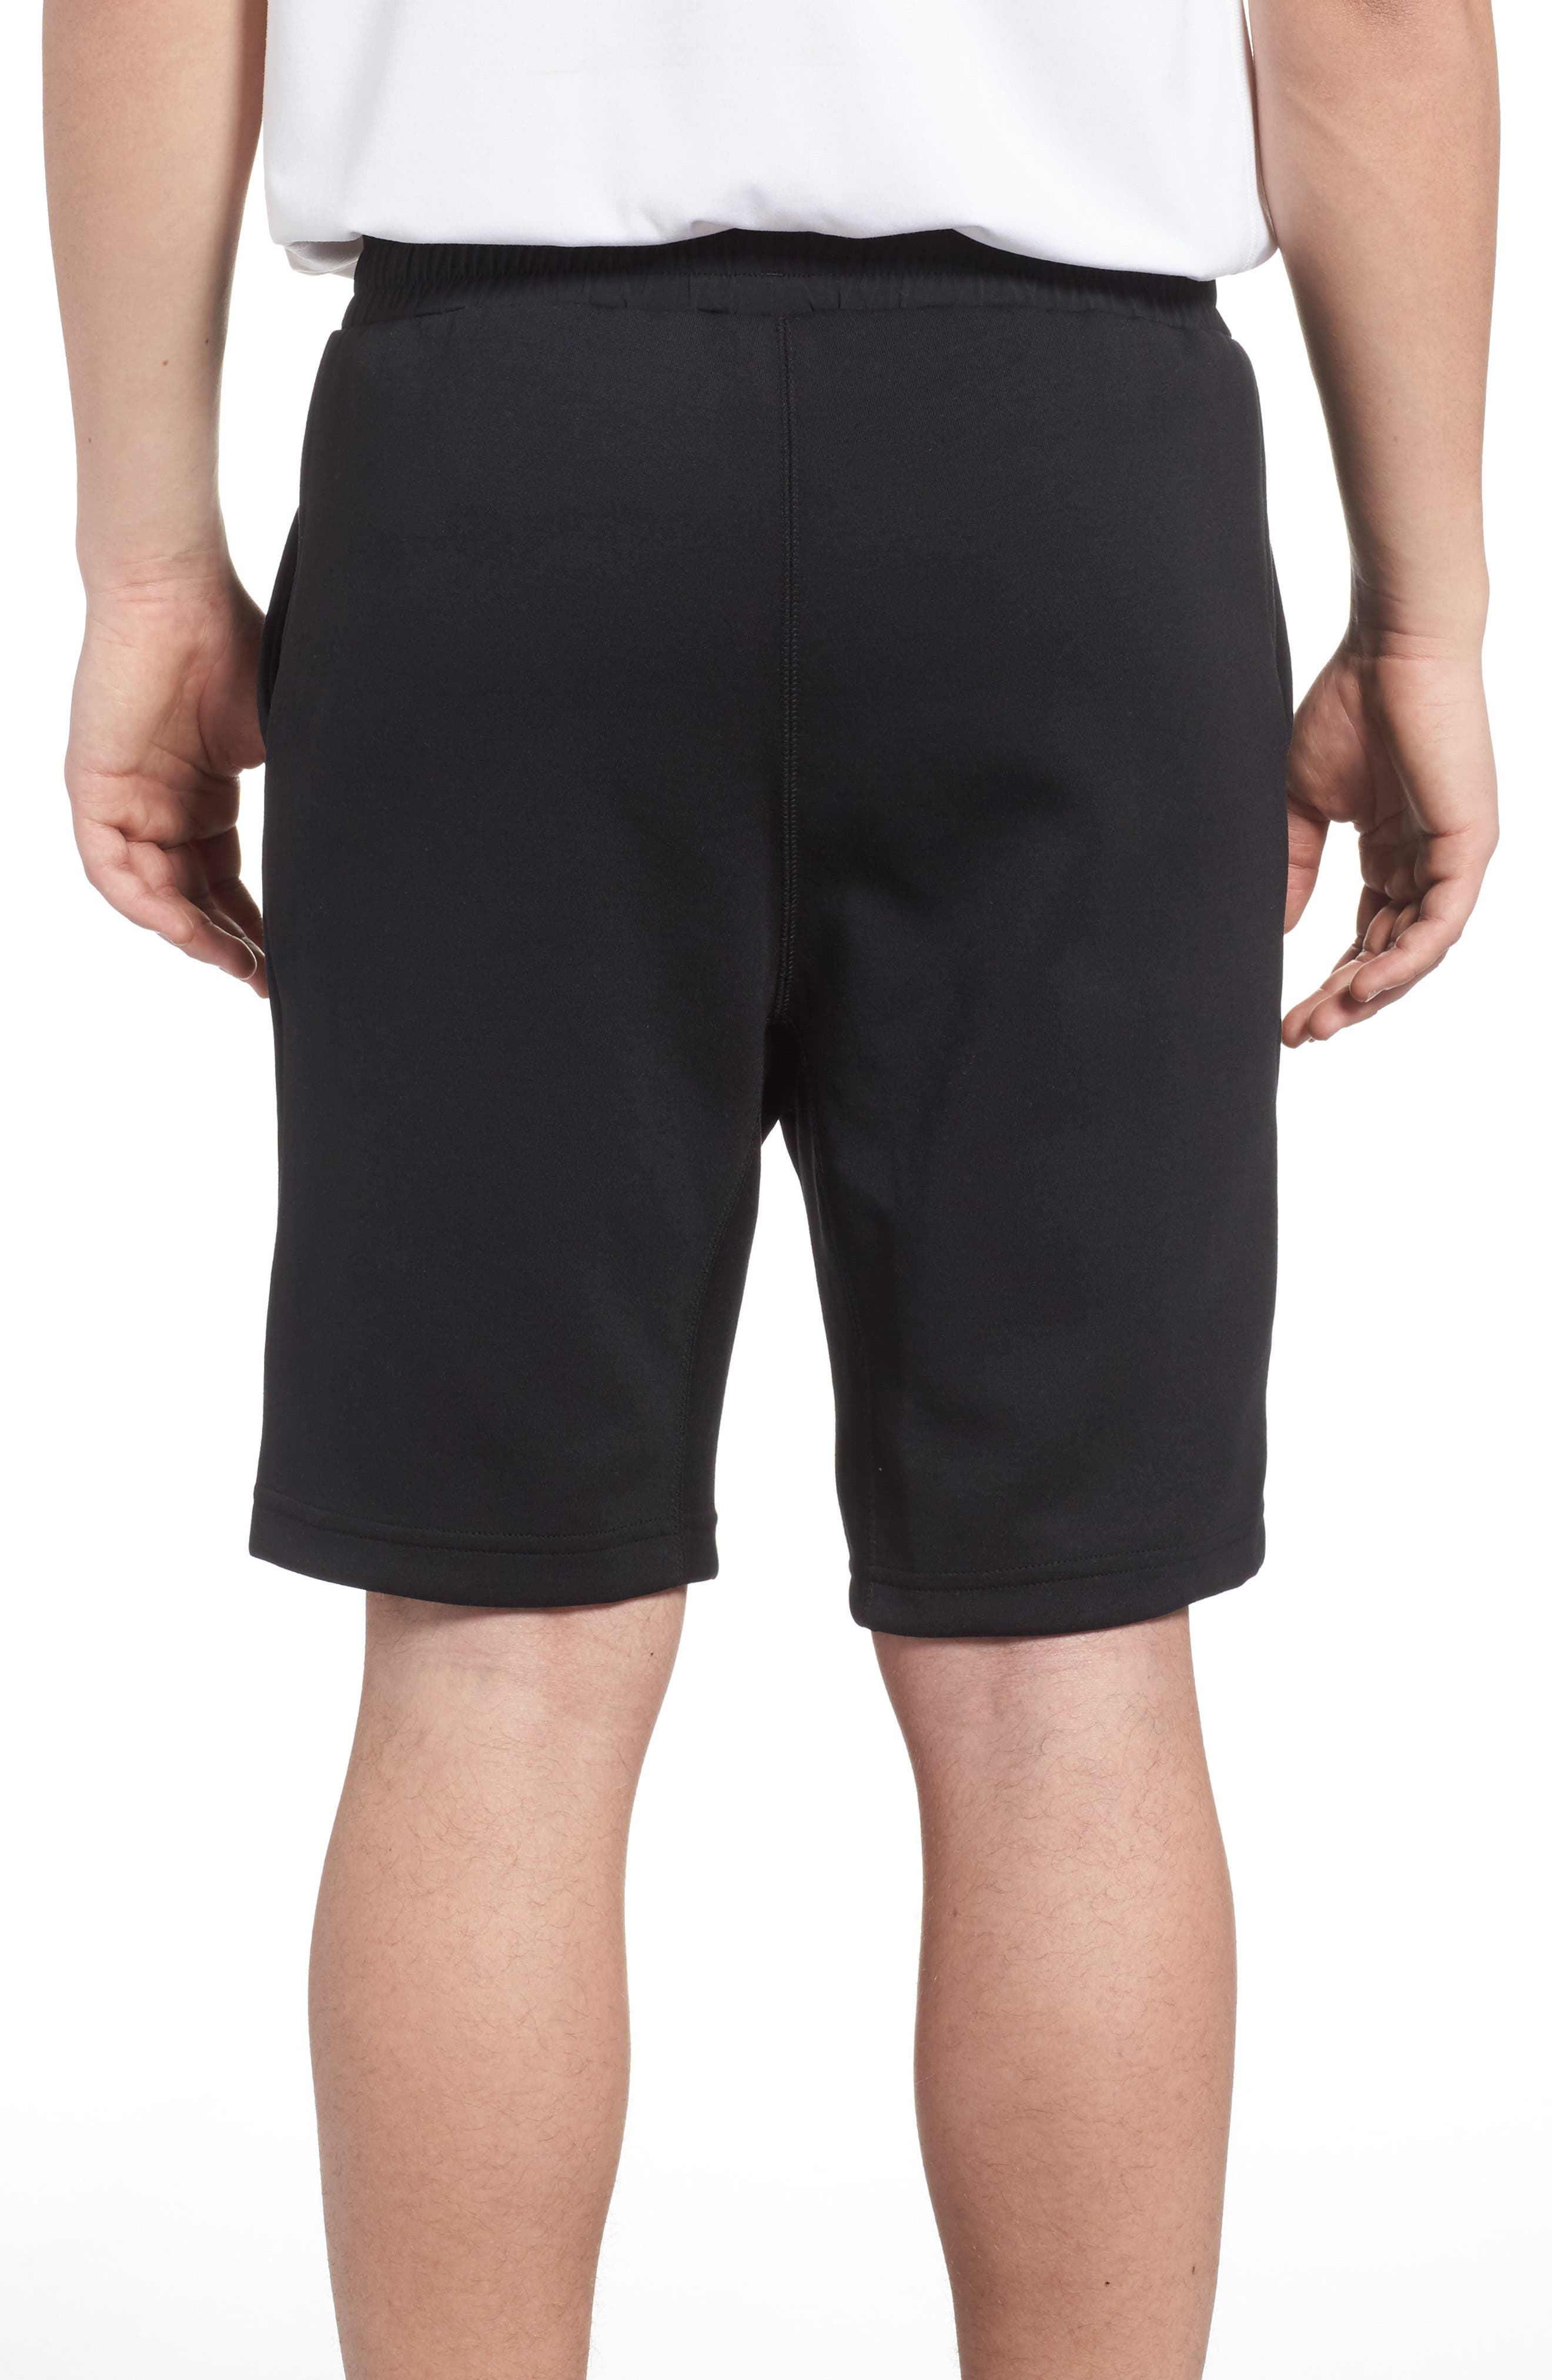 TS Knit Shorts,                             Alternate thumbnail 2, color,                             Black